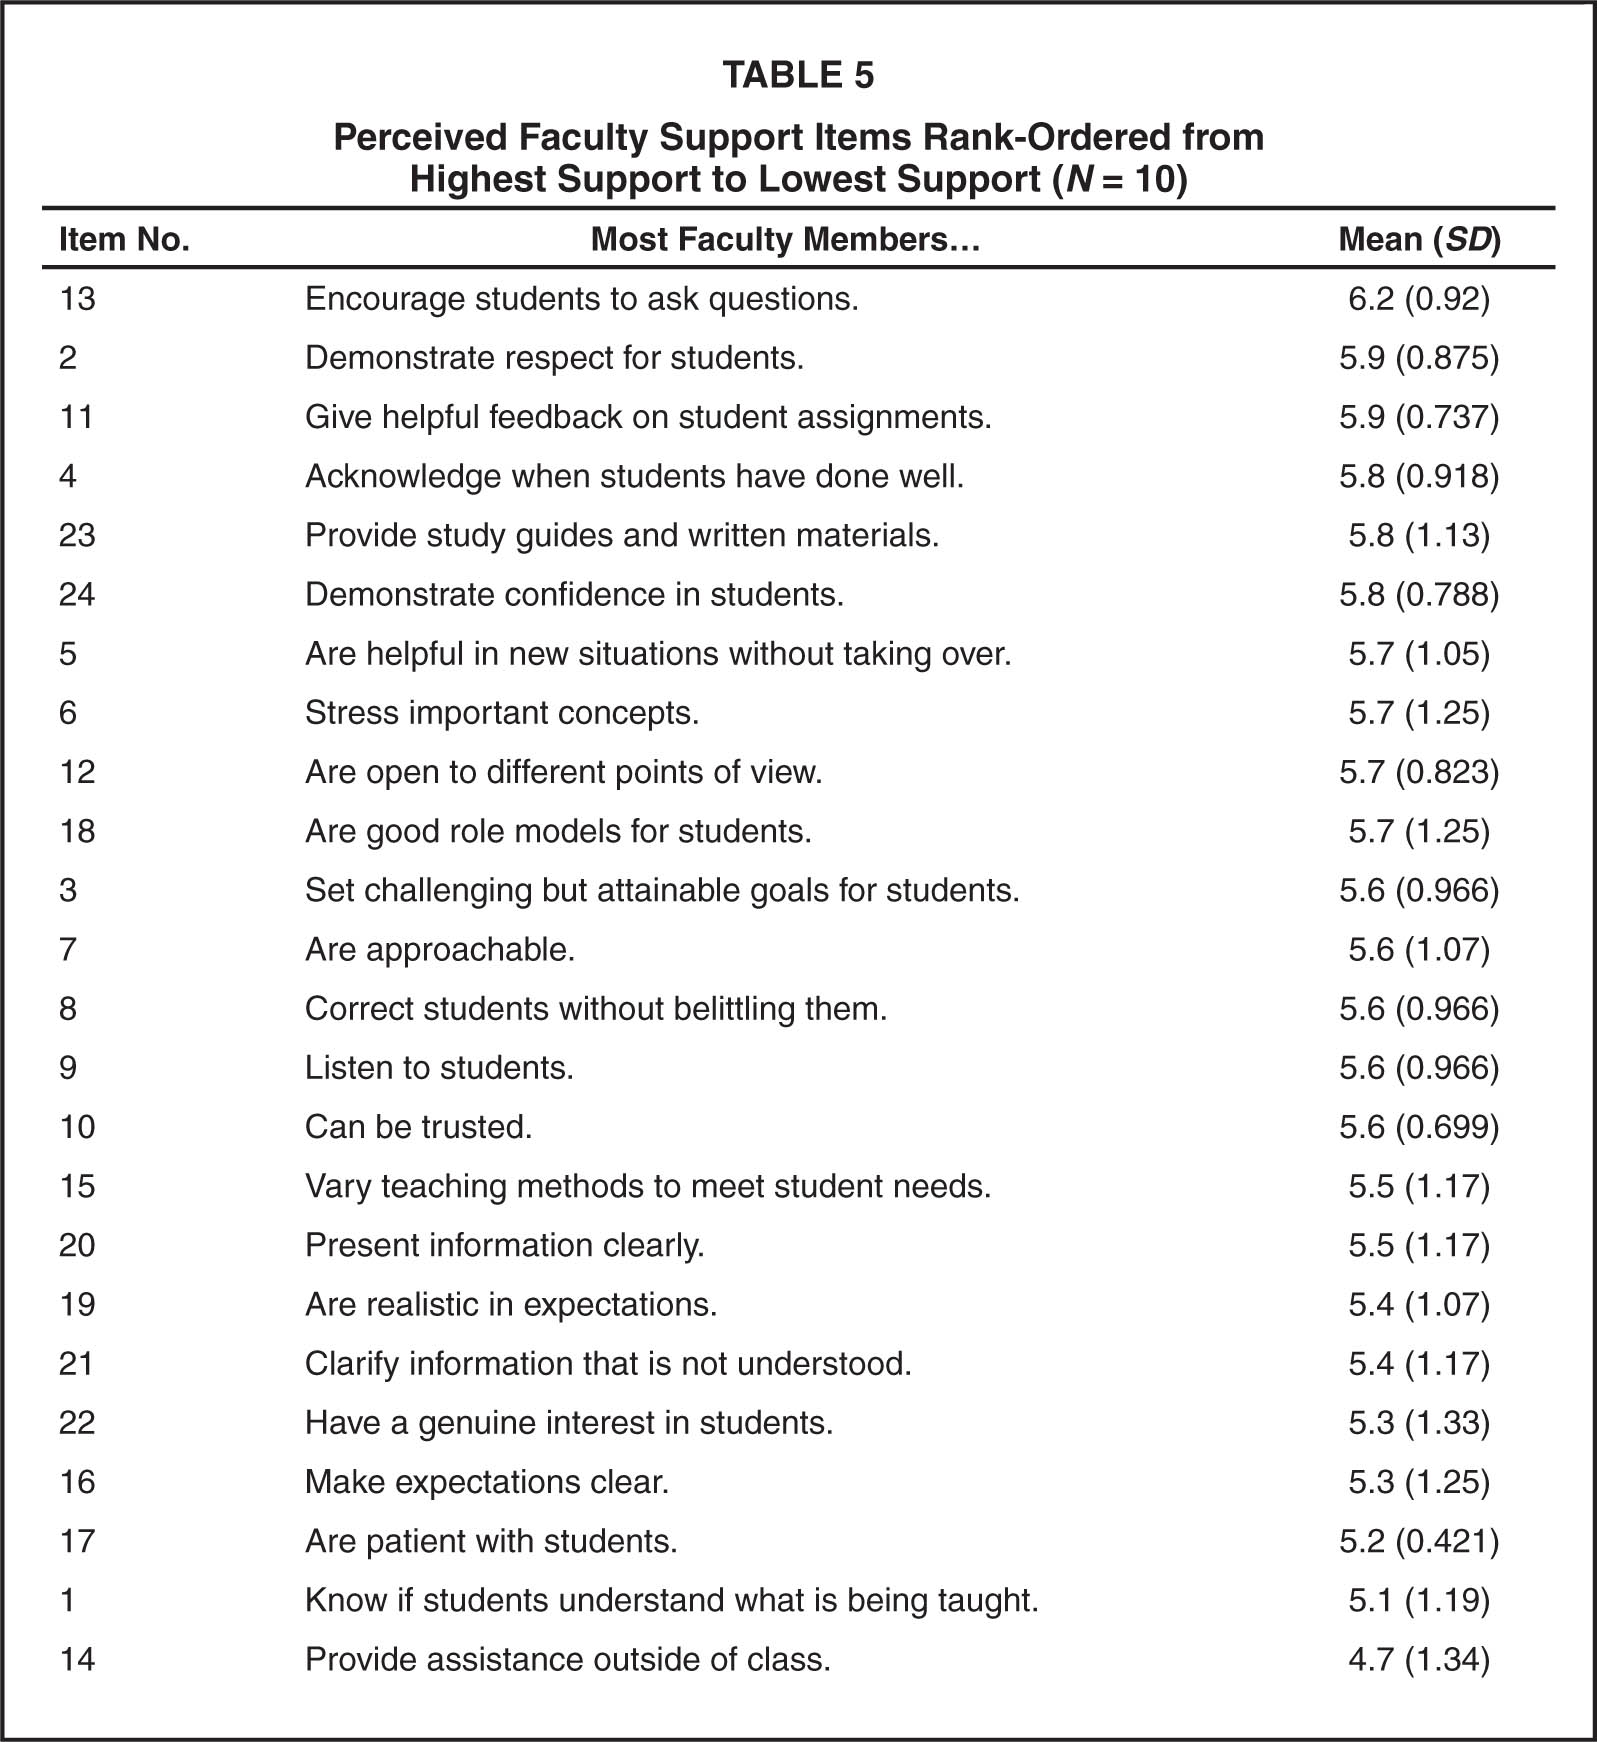 Perceived Faculty Support Items Rank-Ordered from Highest Support to Lowest Support (N = 10)